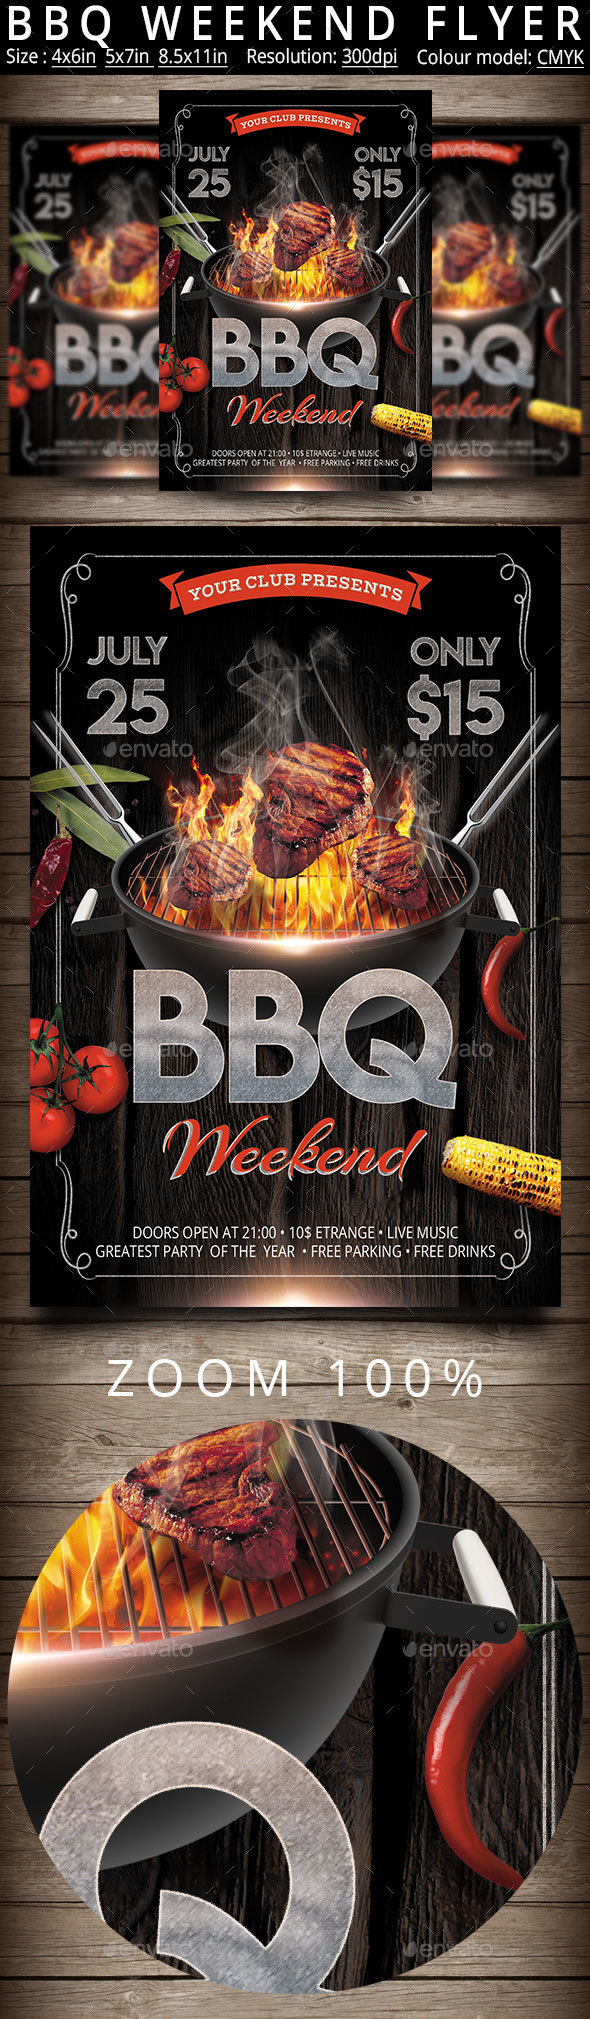 Bbq Weekend Flyer Poster - Events Flyers